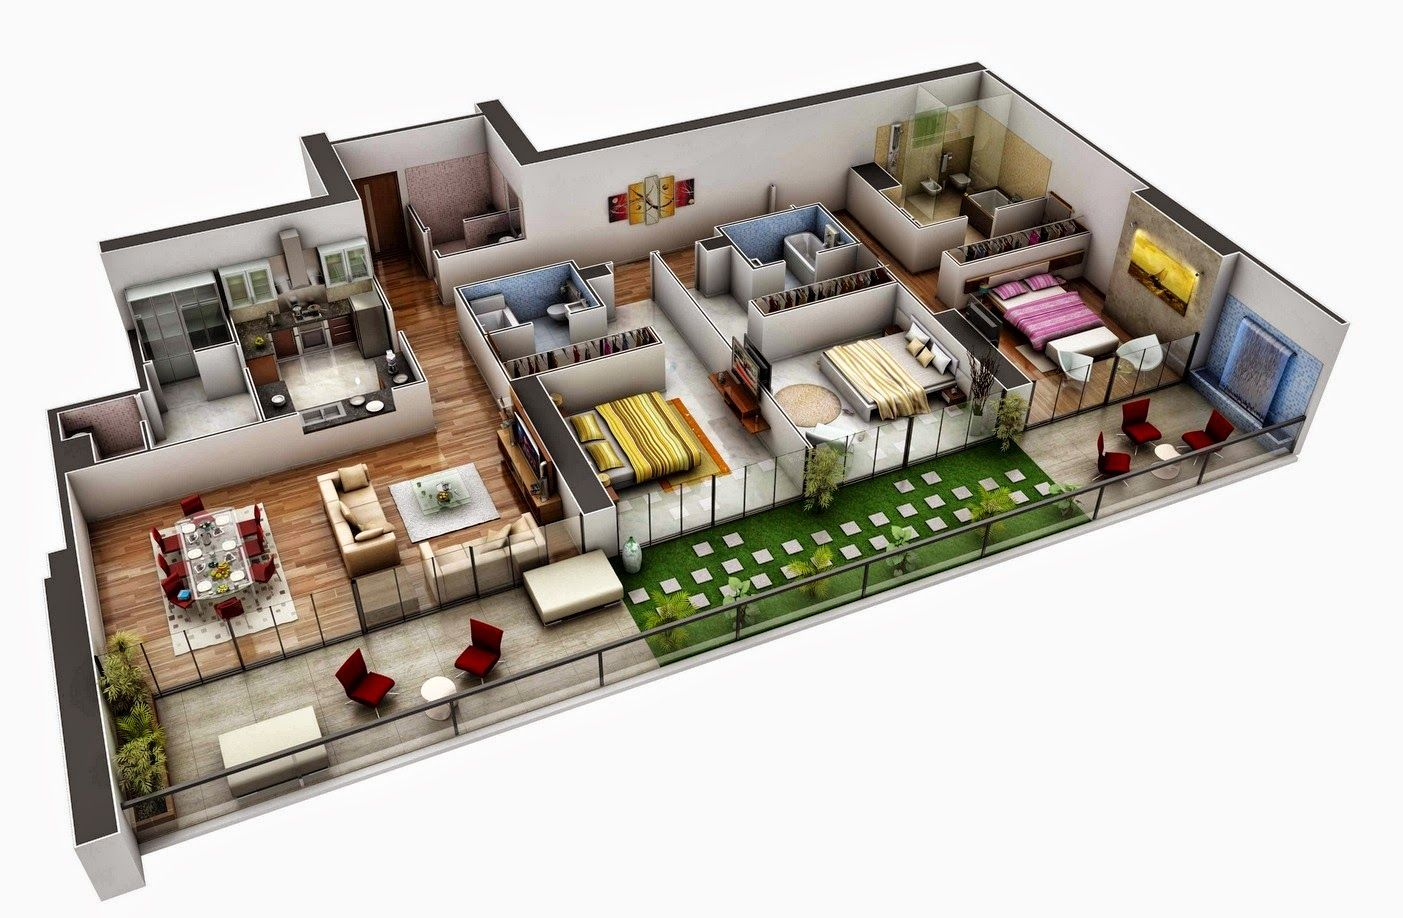 50 Efficient And Spacious House Plans 3d House Plans Three Bedroom House Plan Small House Plans